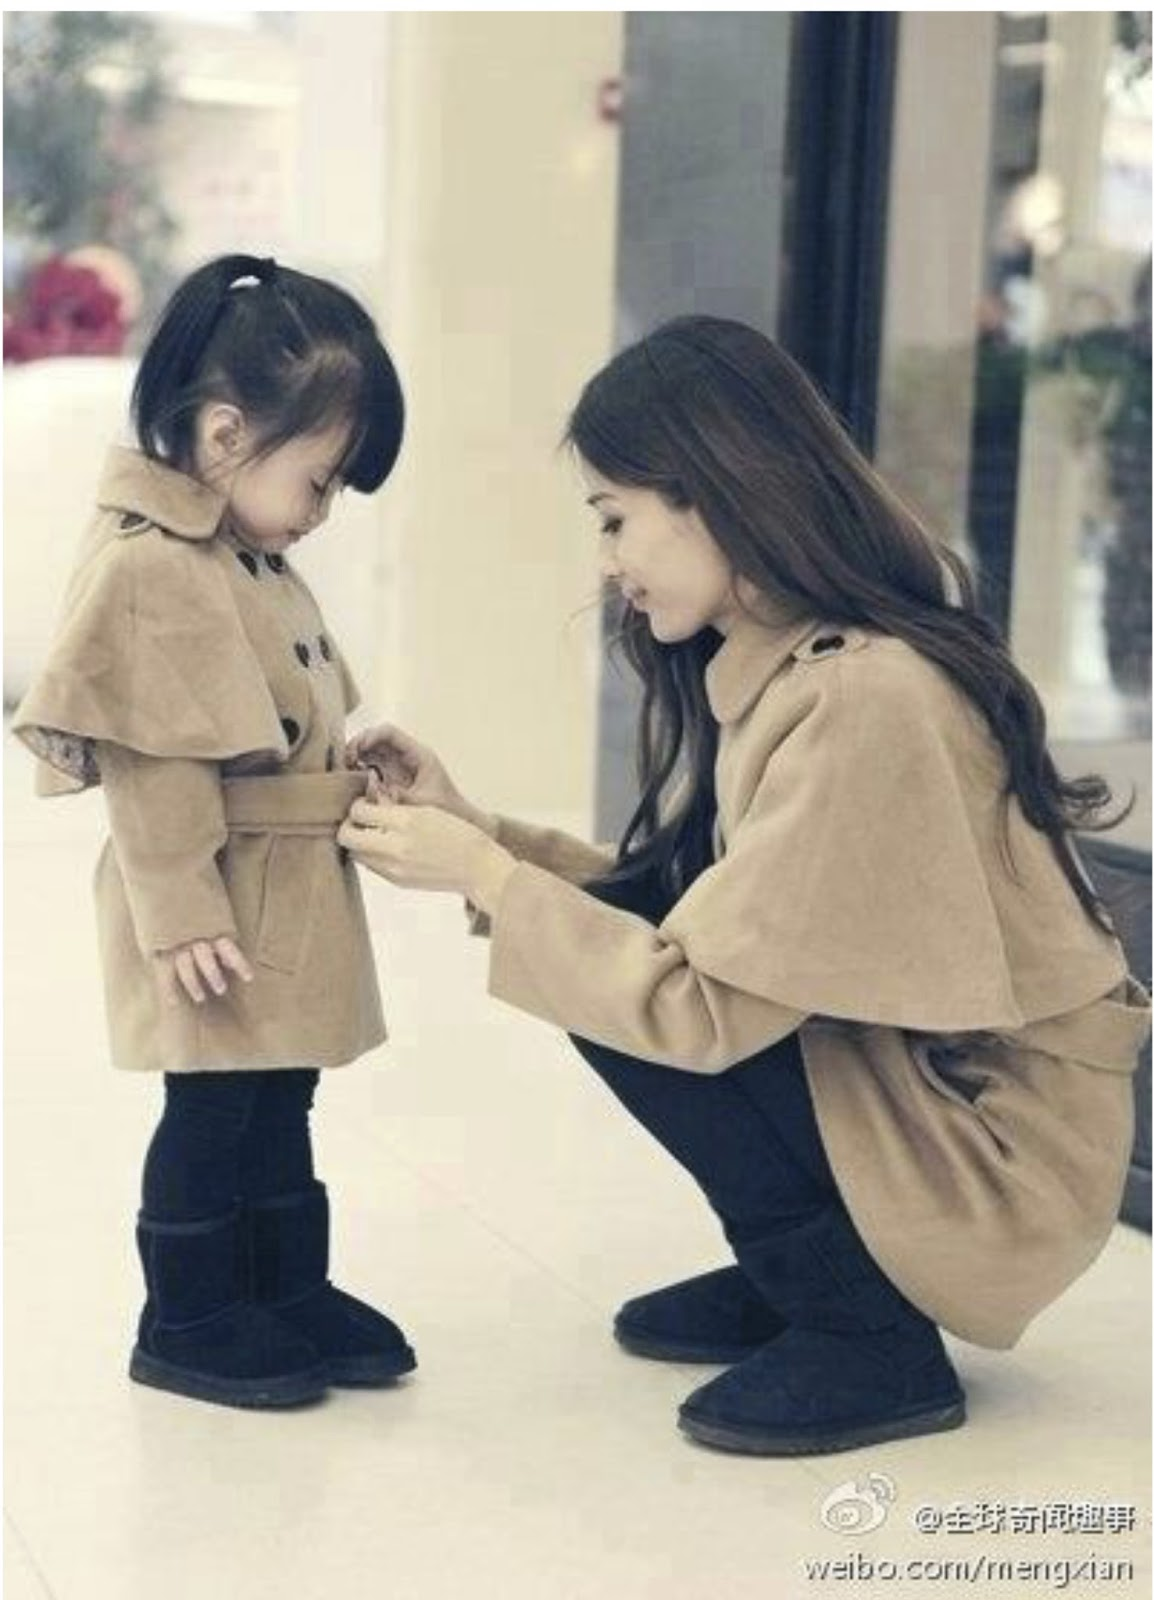 19 Stylish Fall Outfits Worth Copying: 19 Adorable Mothers And Daughters Matching Outfit Ideas